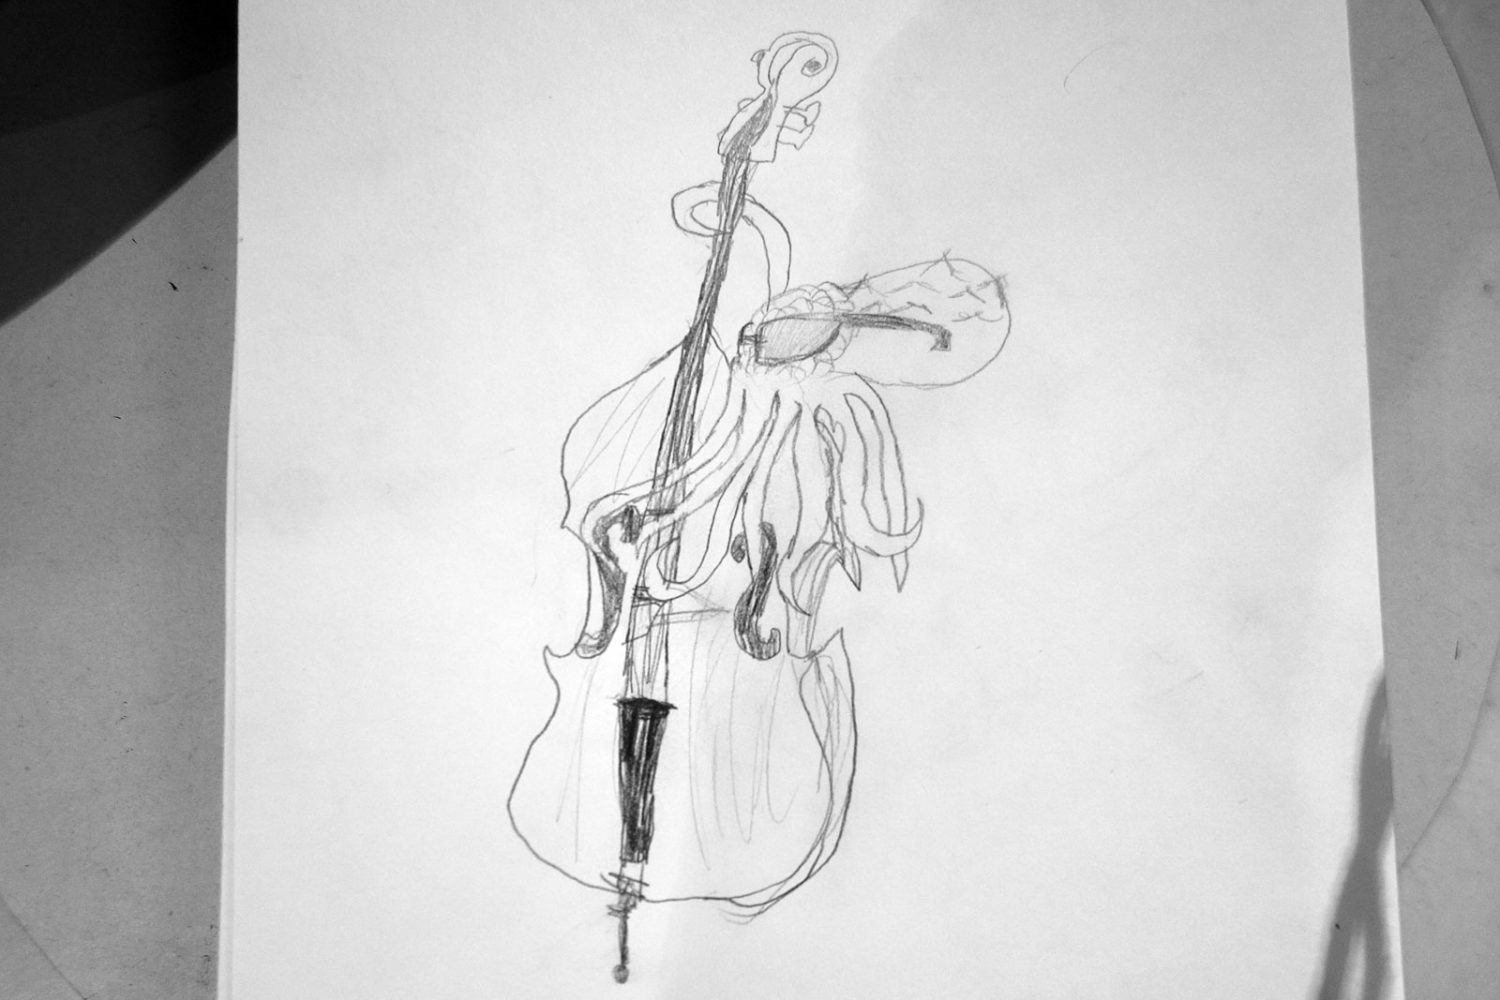 Oscar's drawing of Ken Frank as an octopus playing bass.